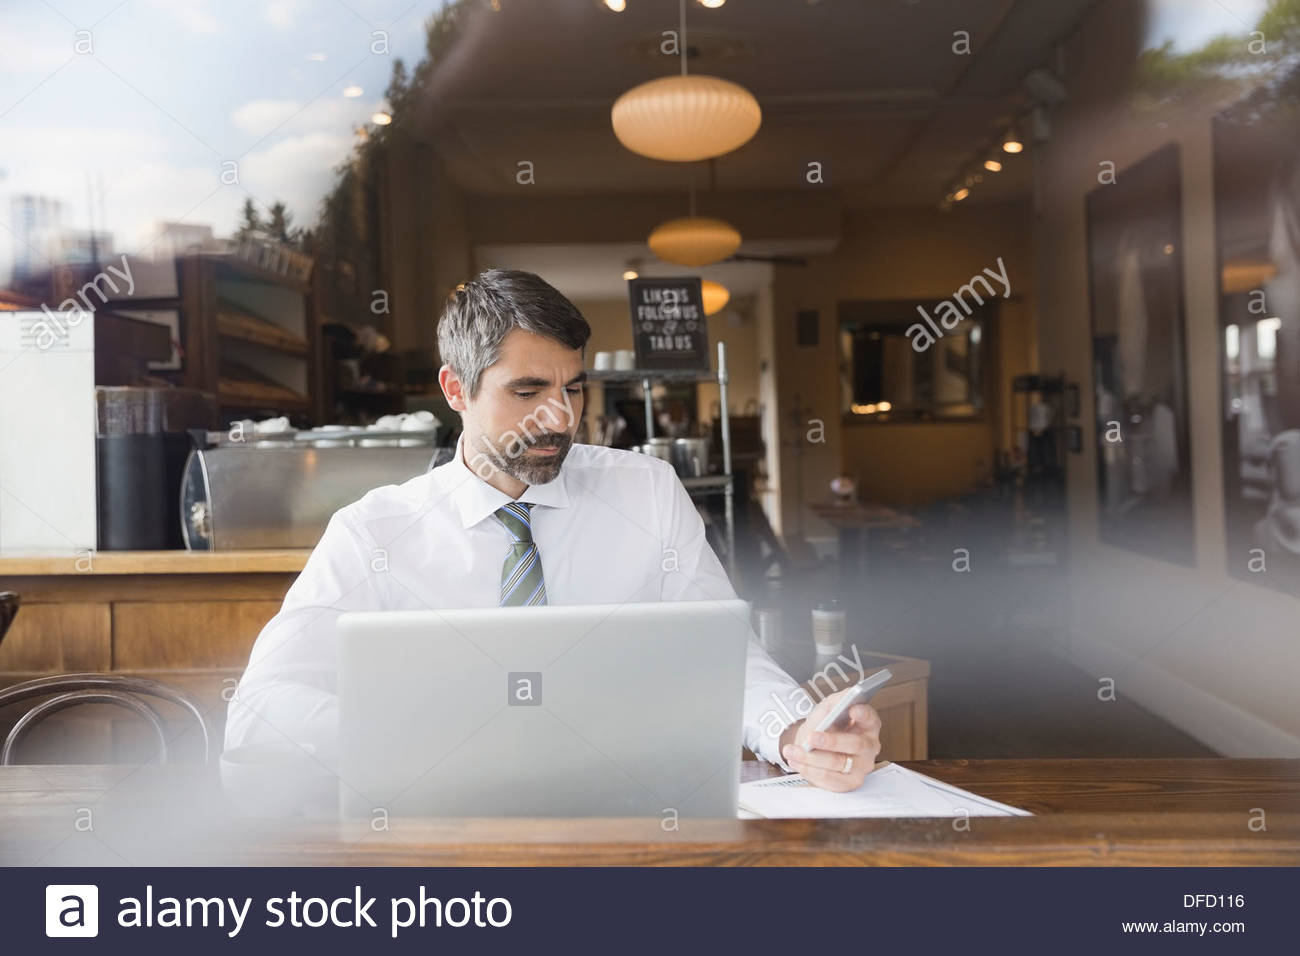 Businessman working on wireless devices in a cafe - Stock Image